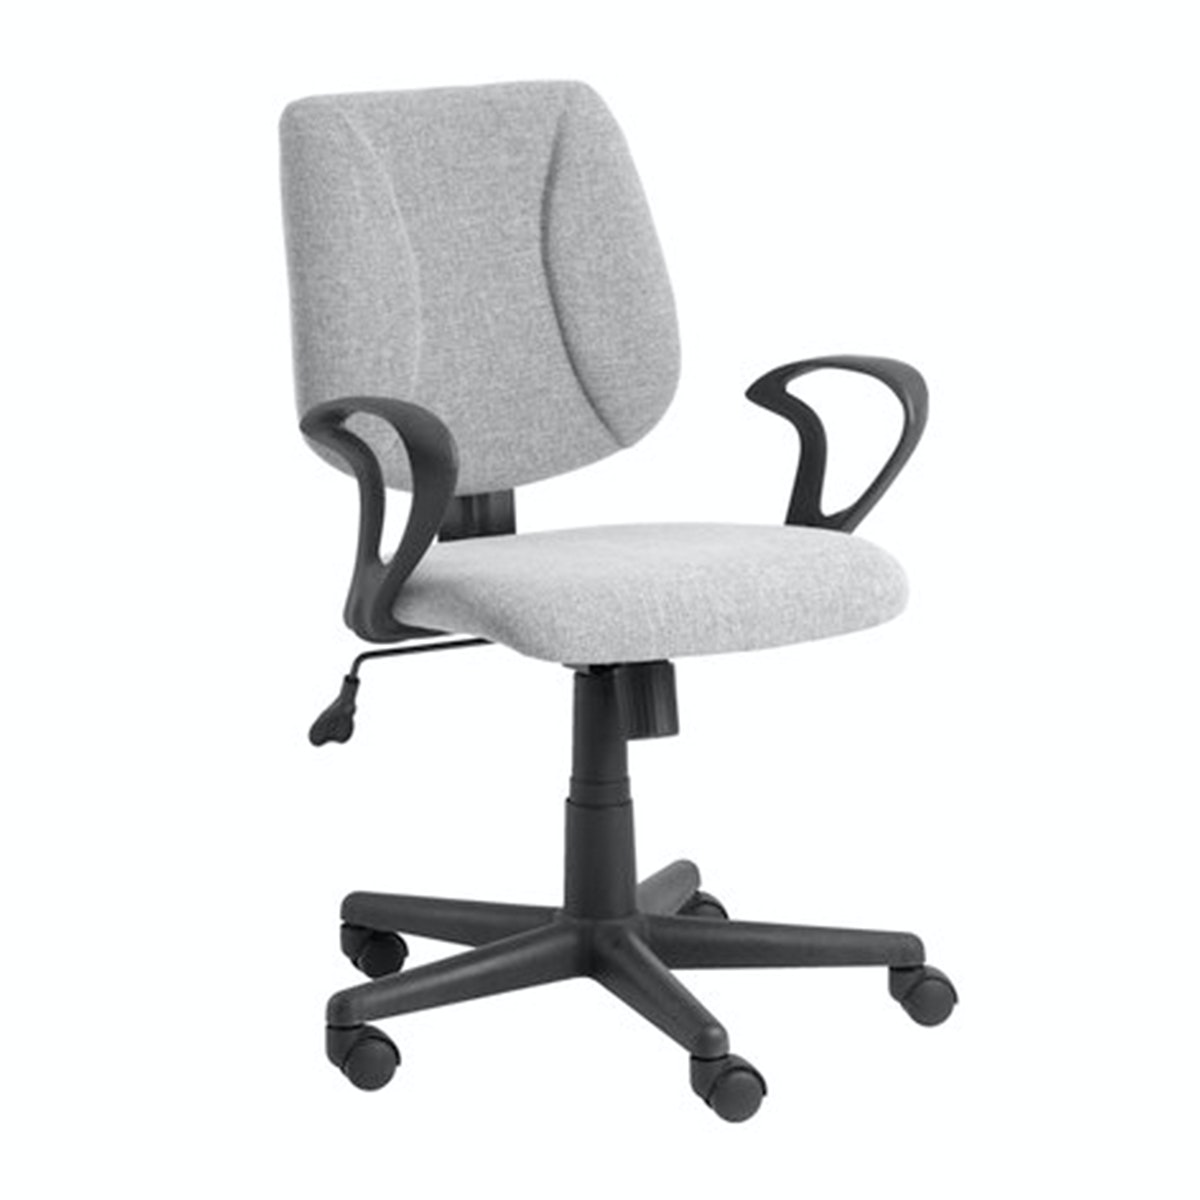 JYSK Office Chair Rungsted Fabric Grey